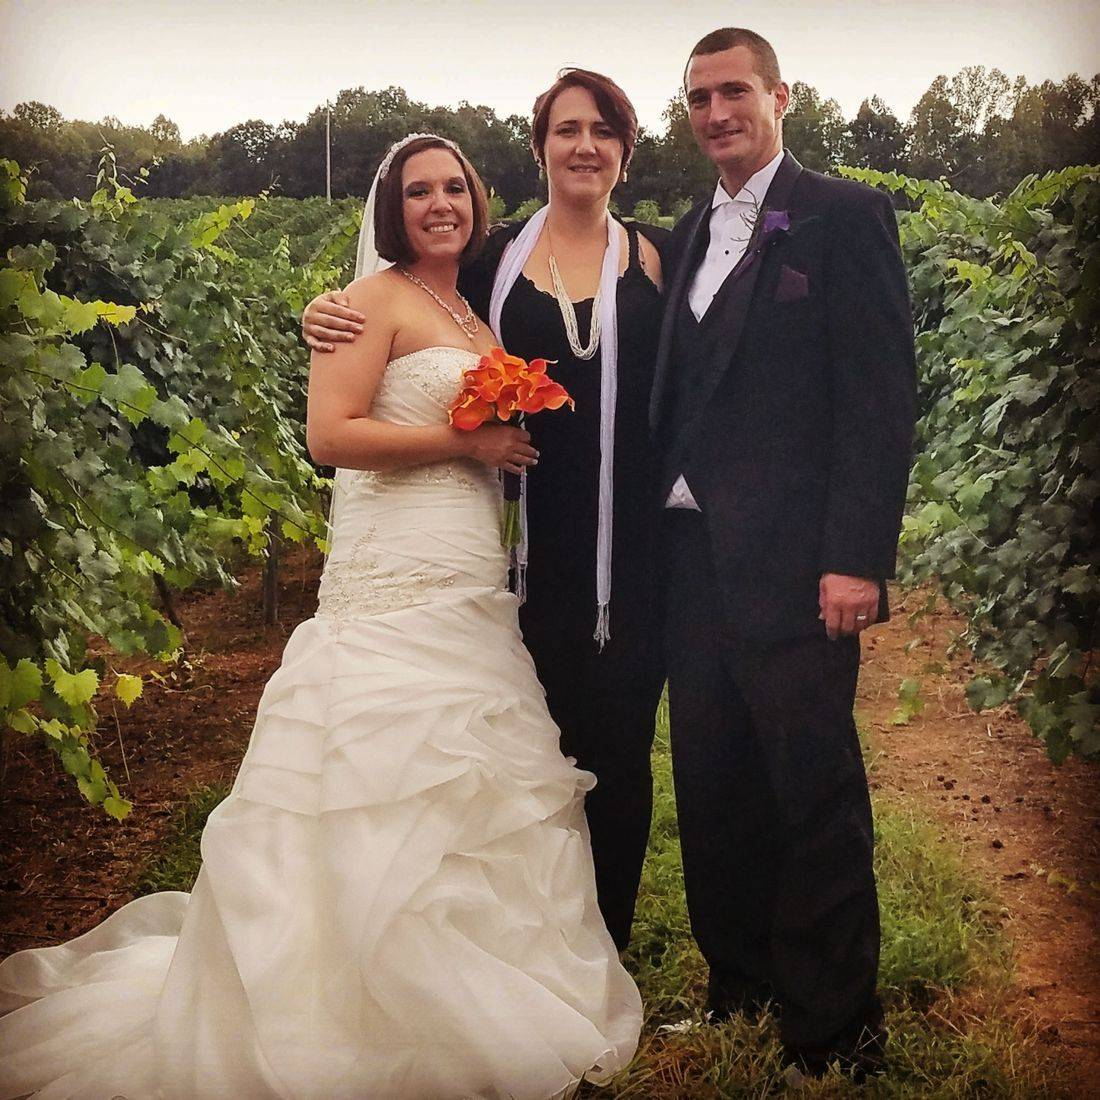 vineyard wedding, rural, outdoor, wine, wedding, celebrant, officiant, venue